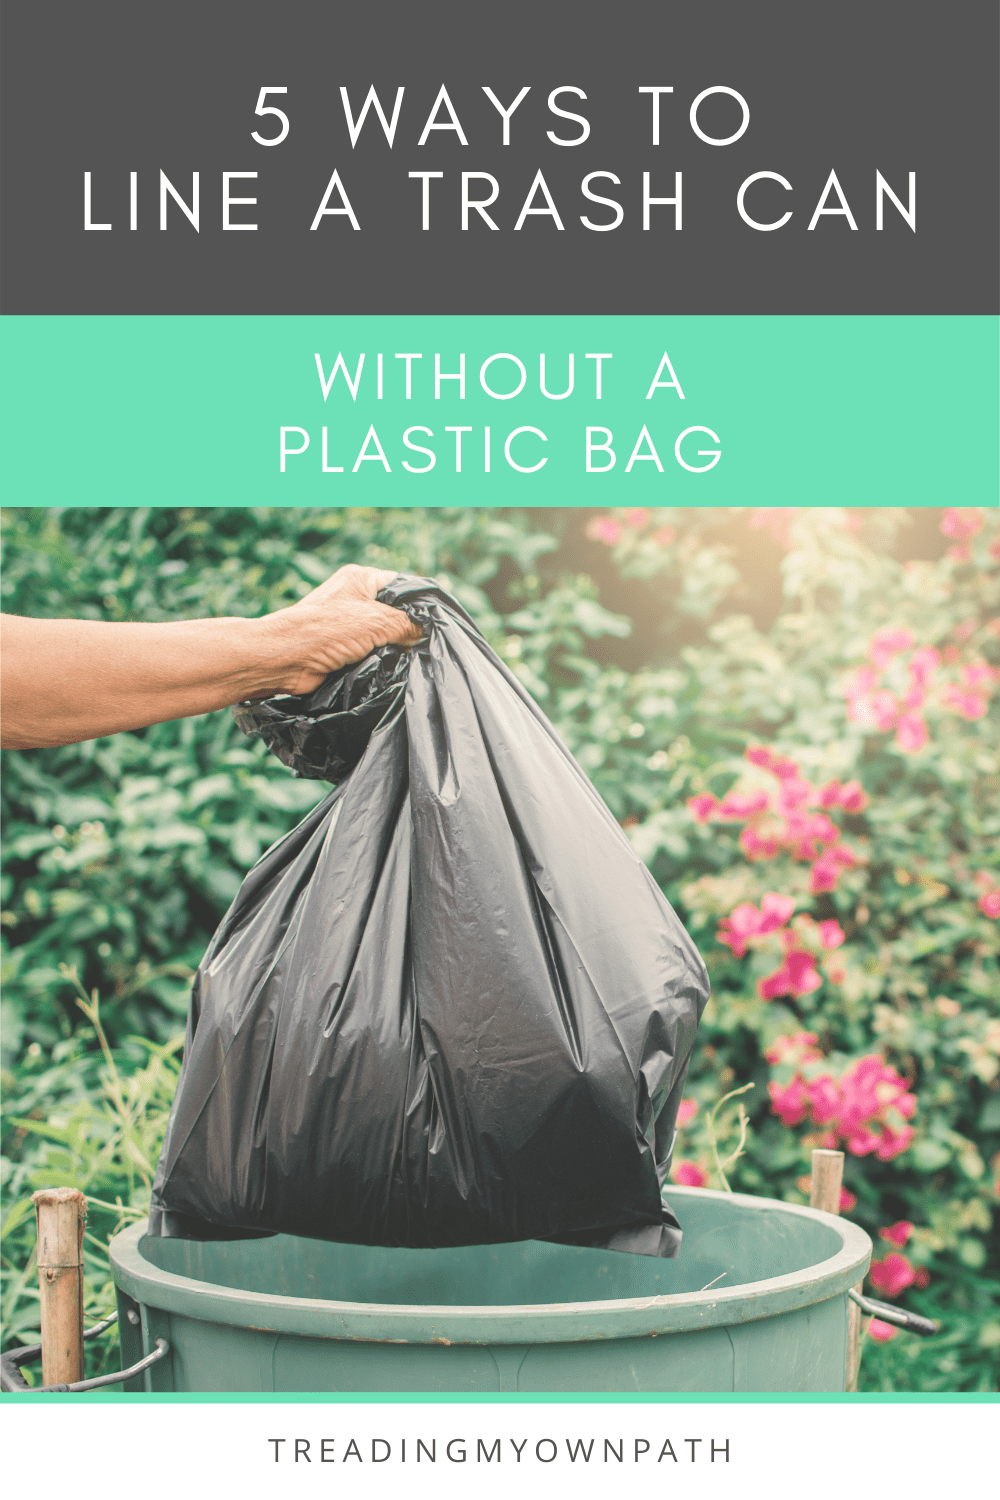 5 Ways to Line a Bin without Plastic Bags